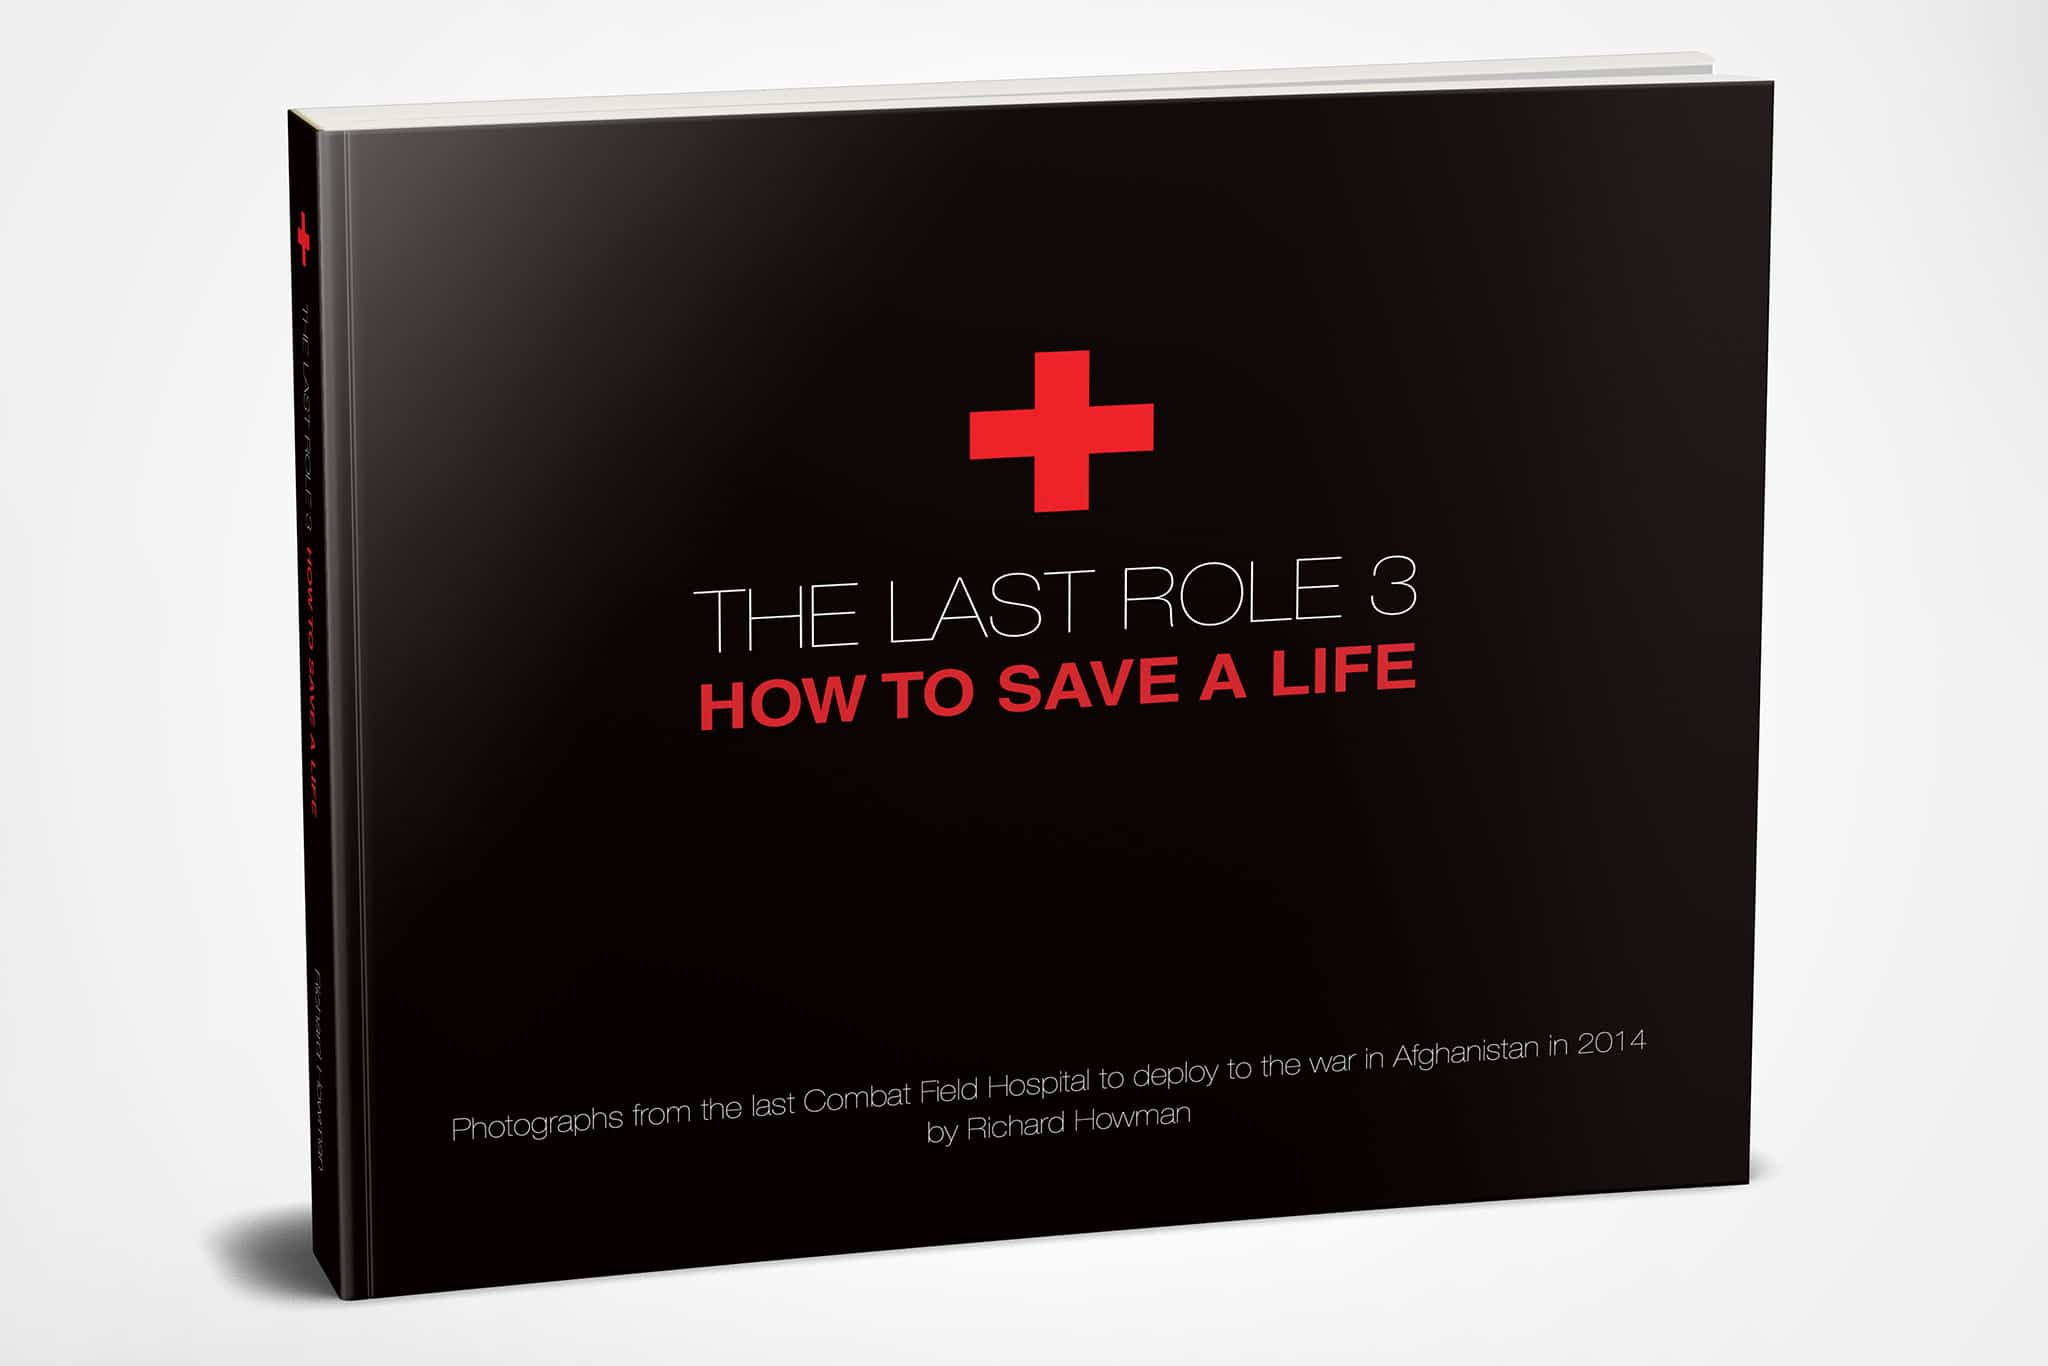 The Last Role 3 Book Afghanistan British Army Field Hospital